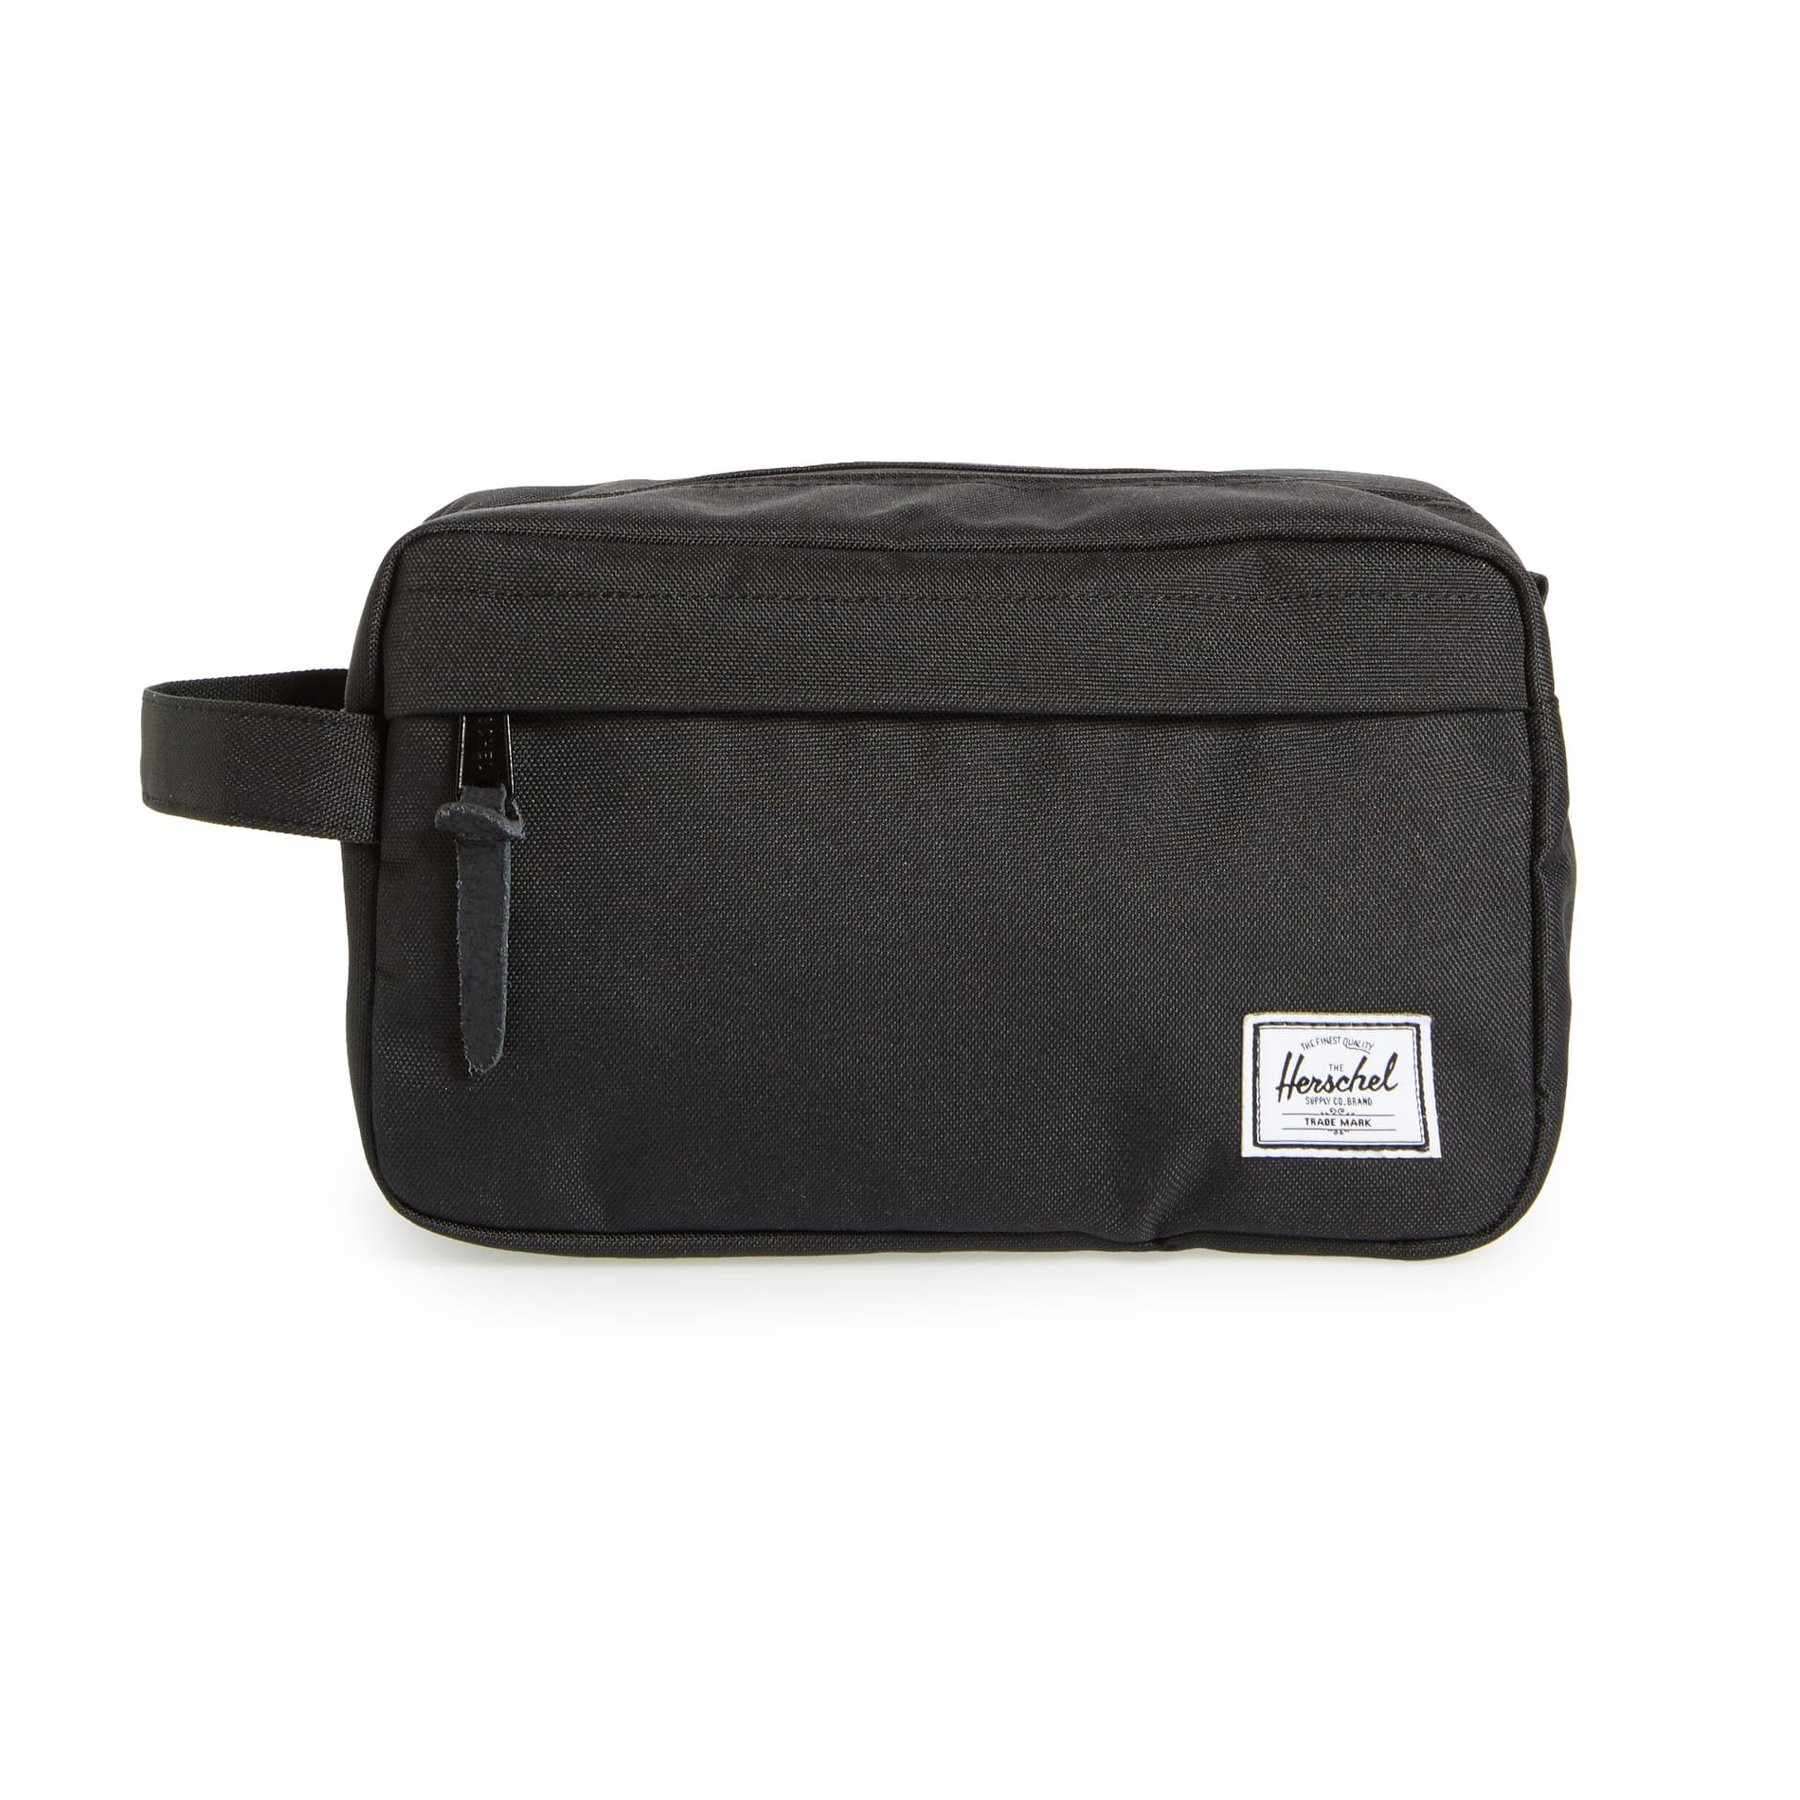 Valentine's Day gifts for him - Herschel Supply Co. Chapter Toiletry Case